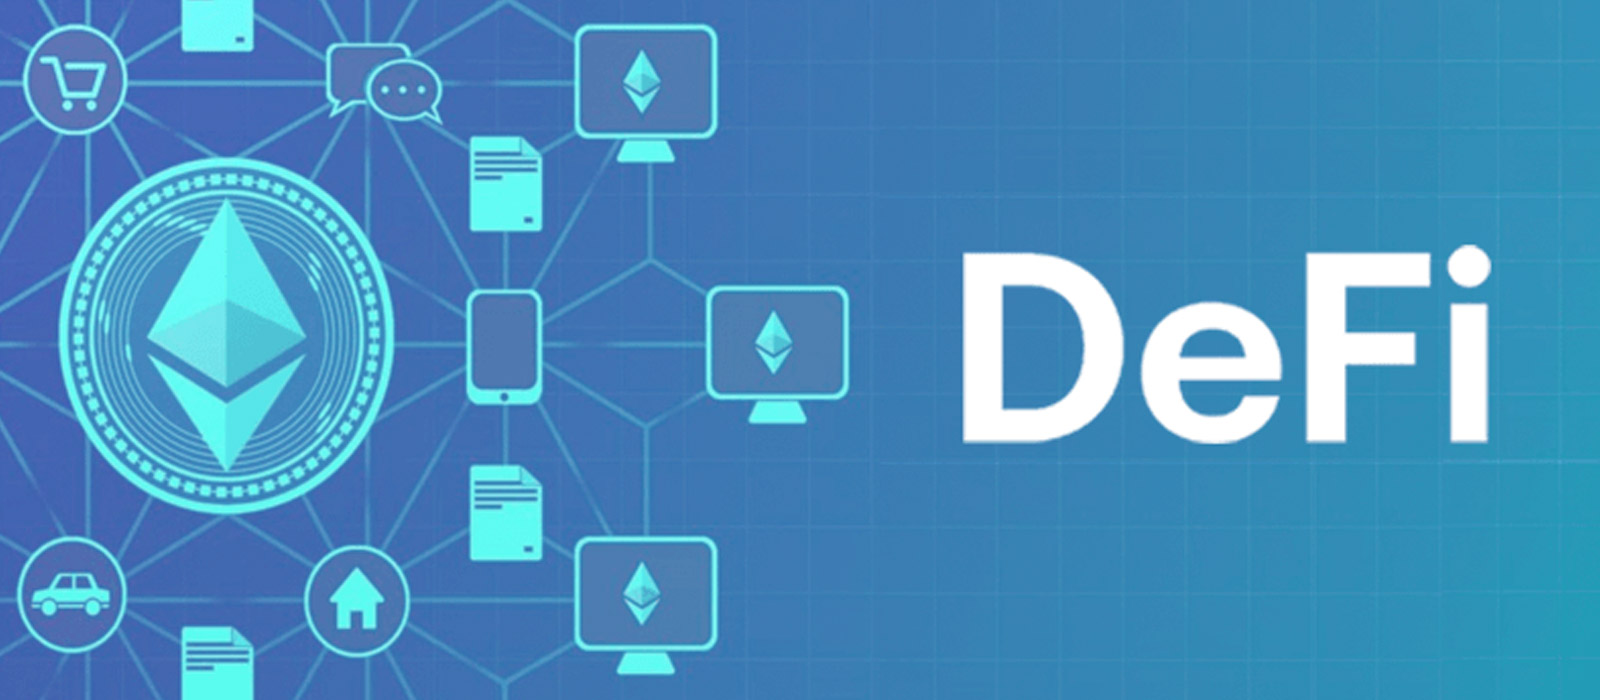 Top Ethereum DeFi Lending, DEX, and Payments Projects